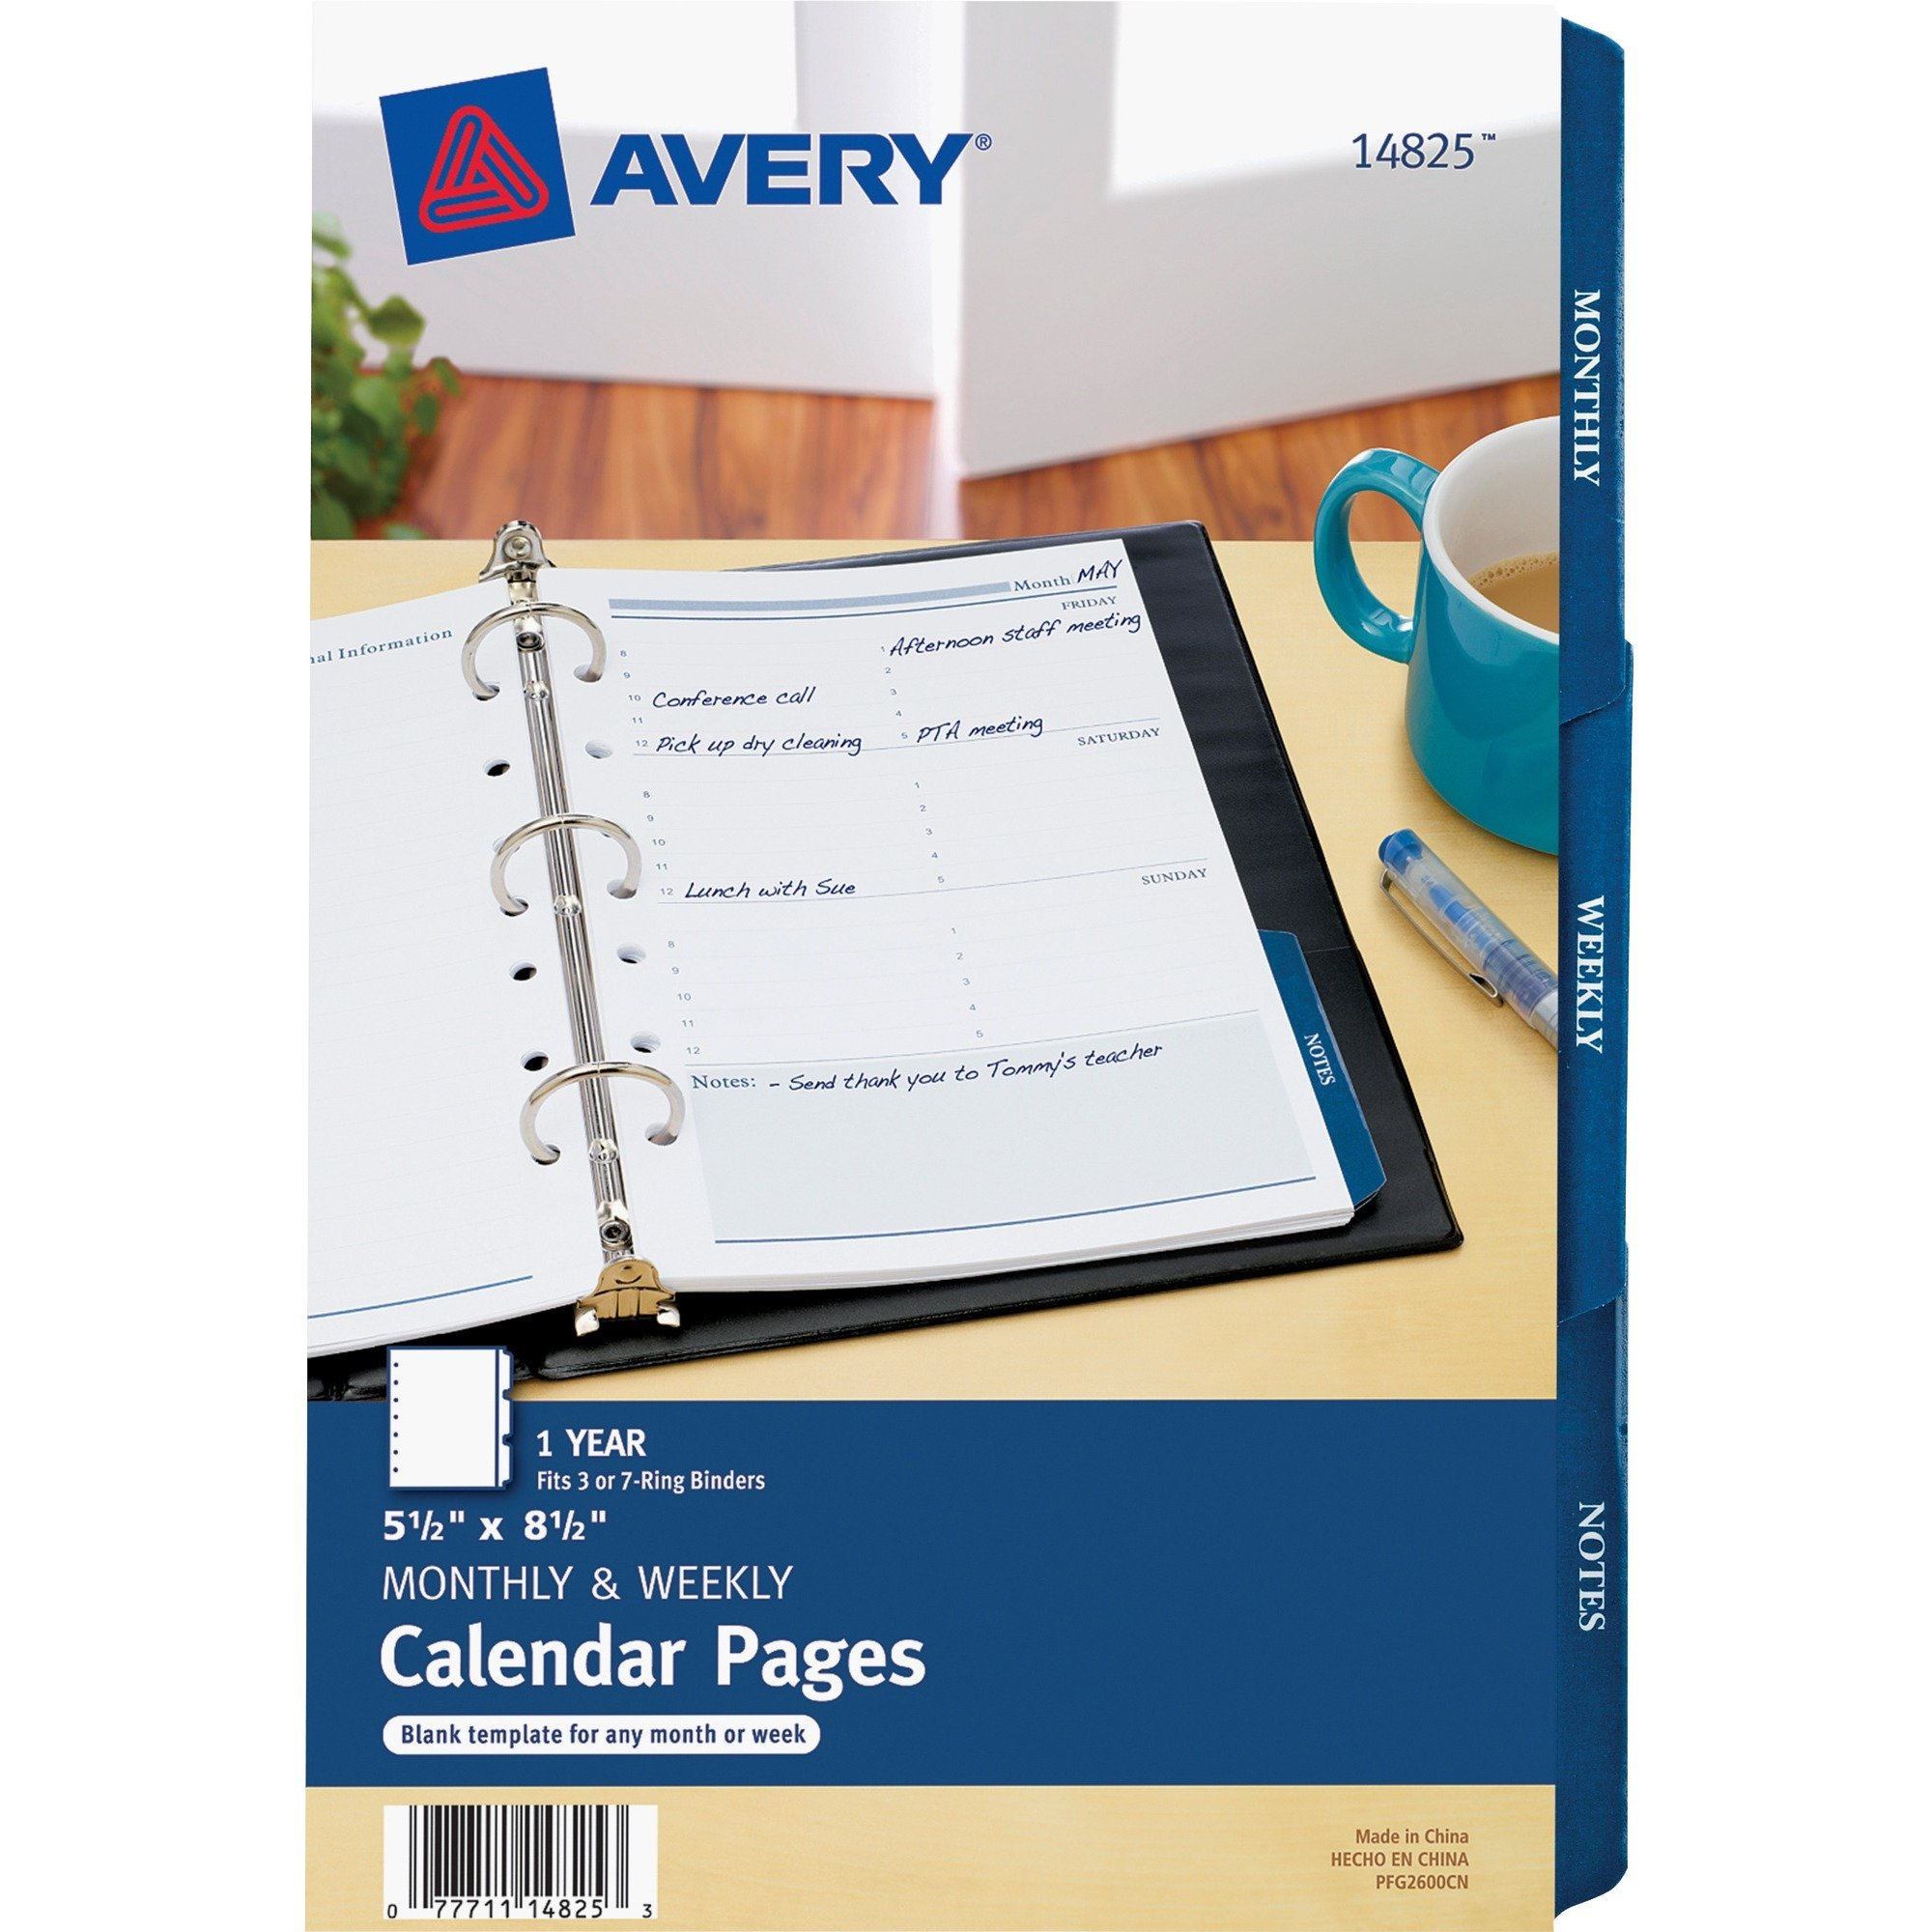 "Avery 5.5"" X 8.5"" Mini Calendar Pages, Fits 3-Ring/7-Ring 8.5 X 5.5 Calendar"